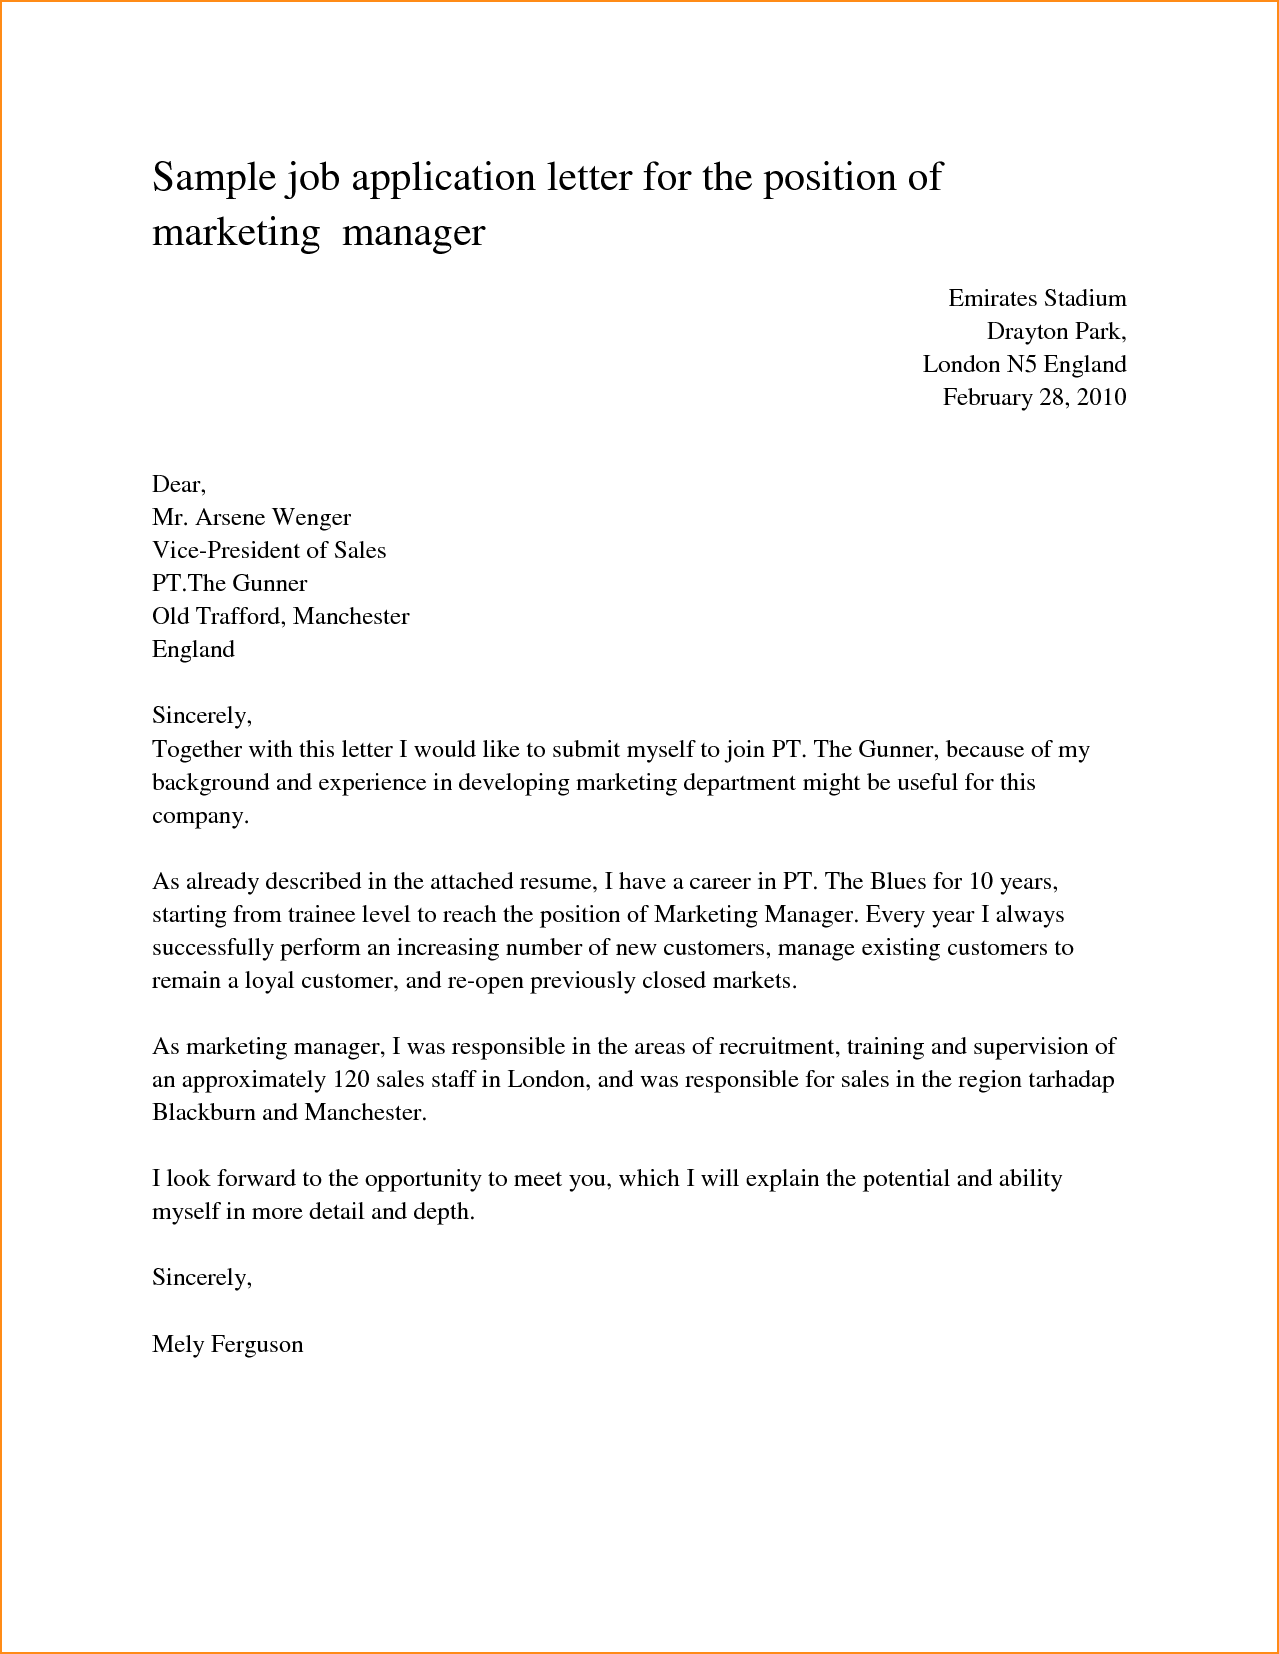 Sample job application letter for the position marketing manager sample job application letter for the position marketing manager any resumed madrichimfo Choice Image